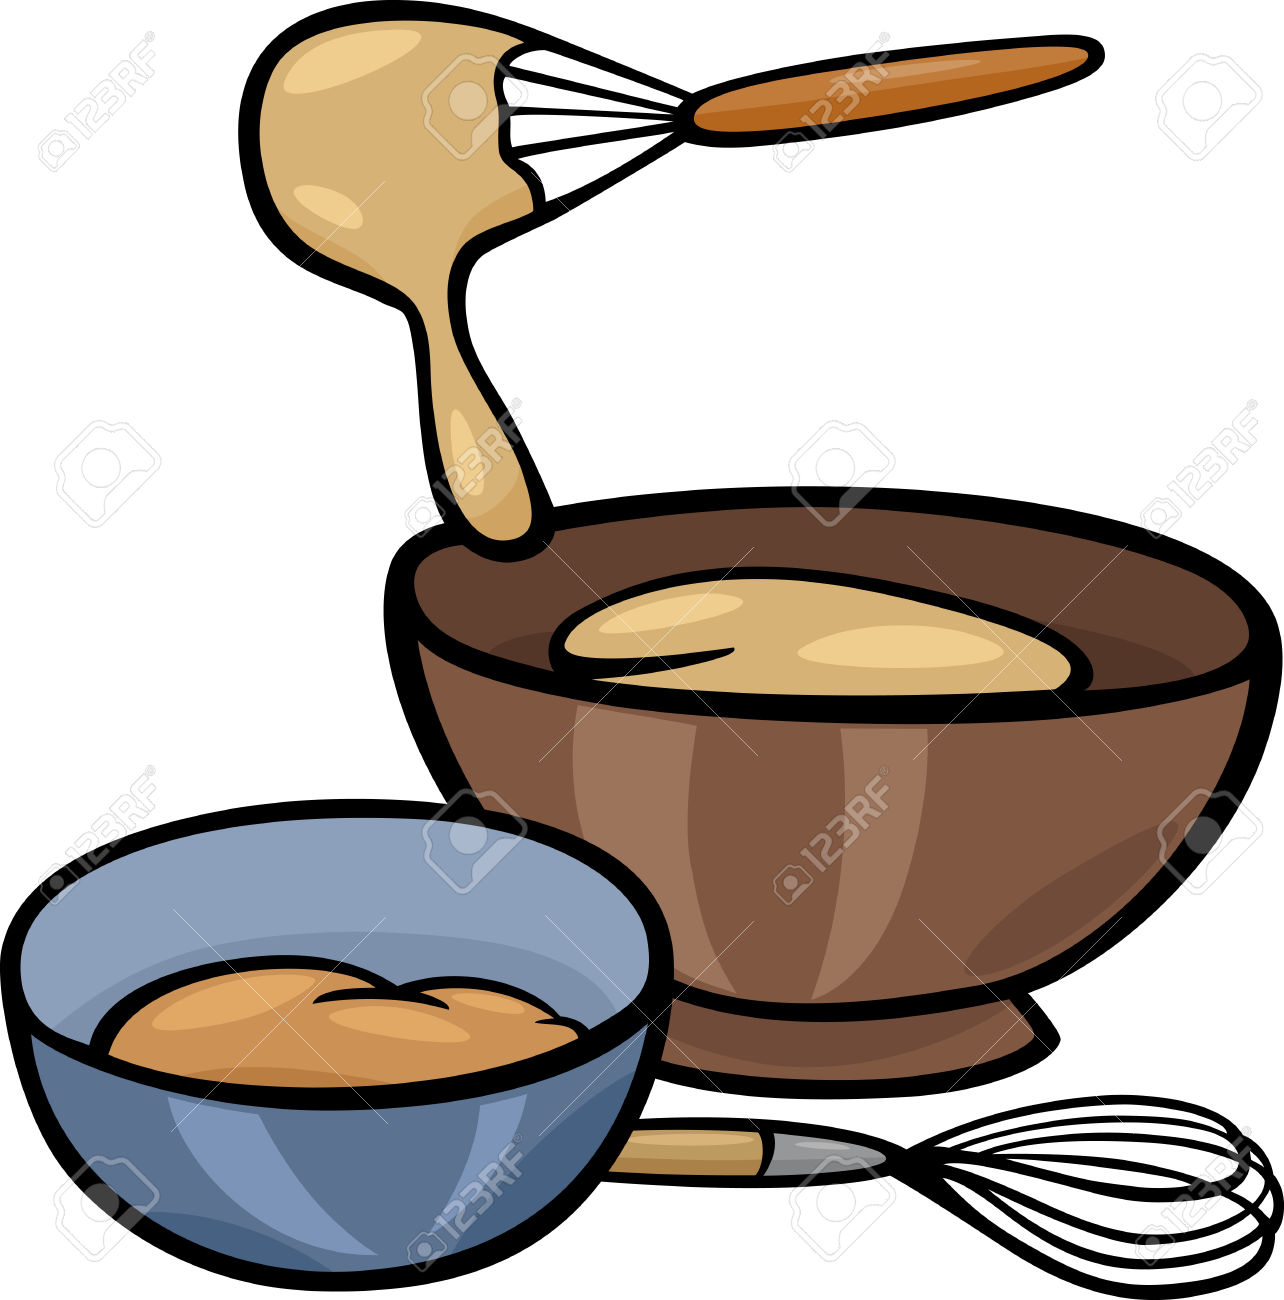 Cartoon Illustration Of Kneading Dough With Whisk In A Bowl Clip.